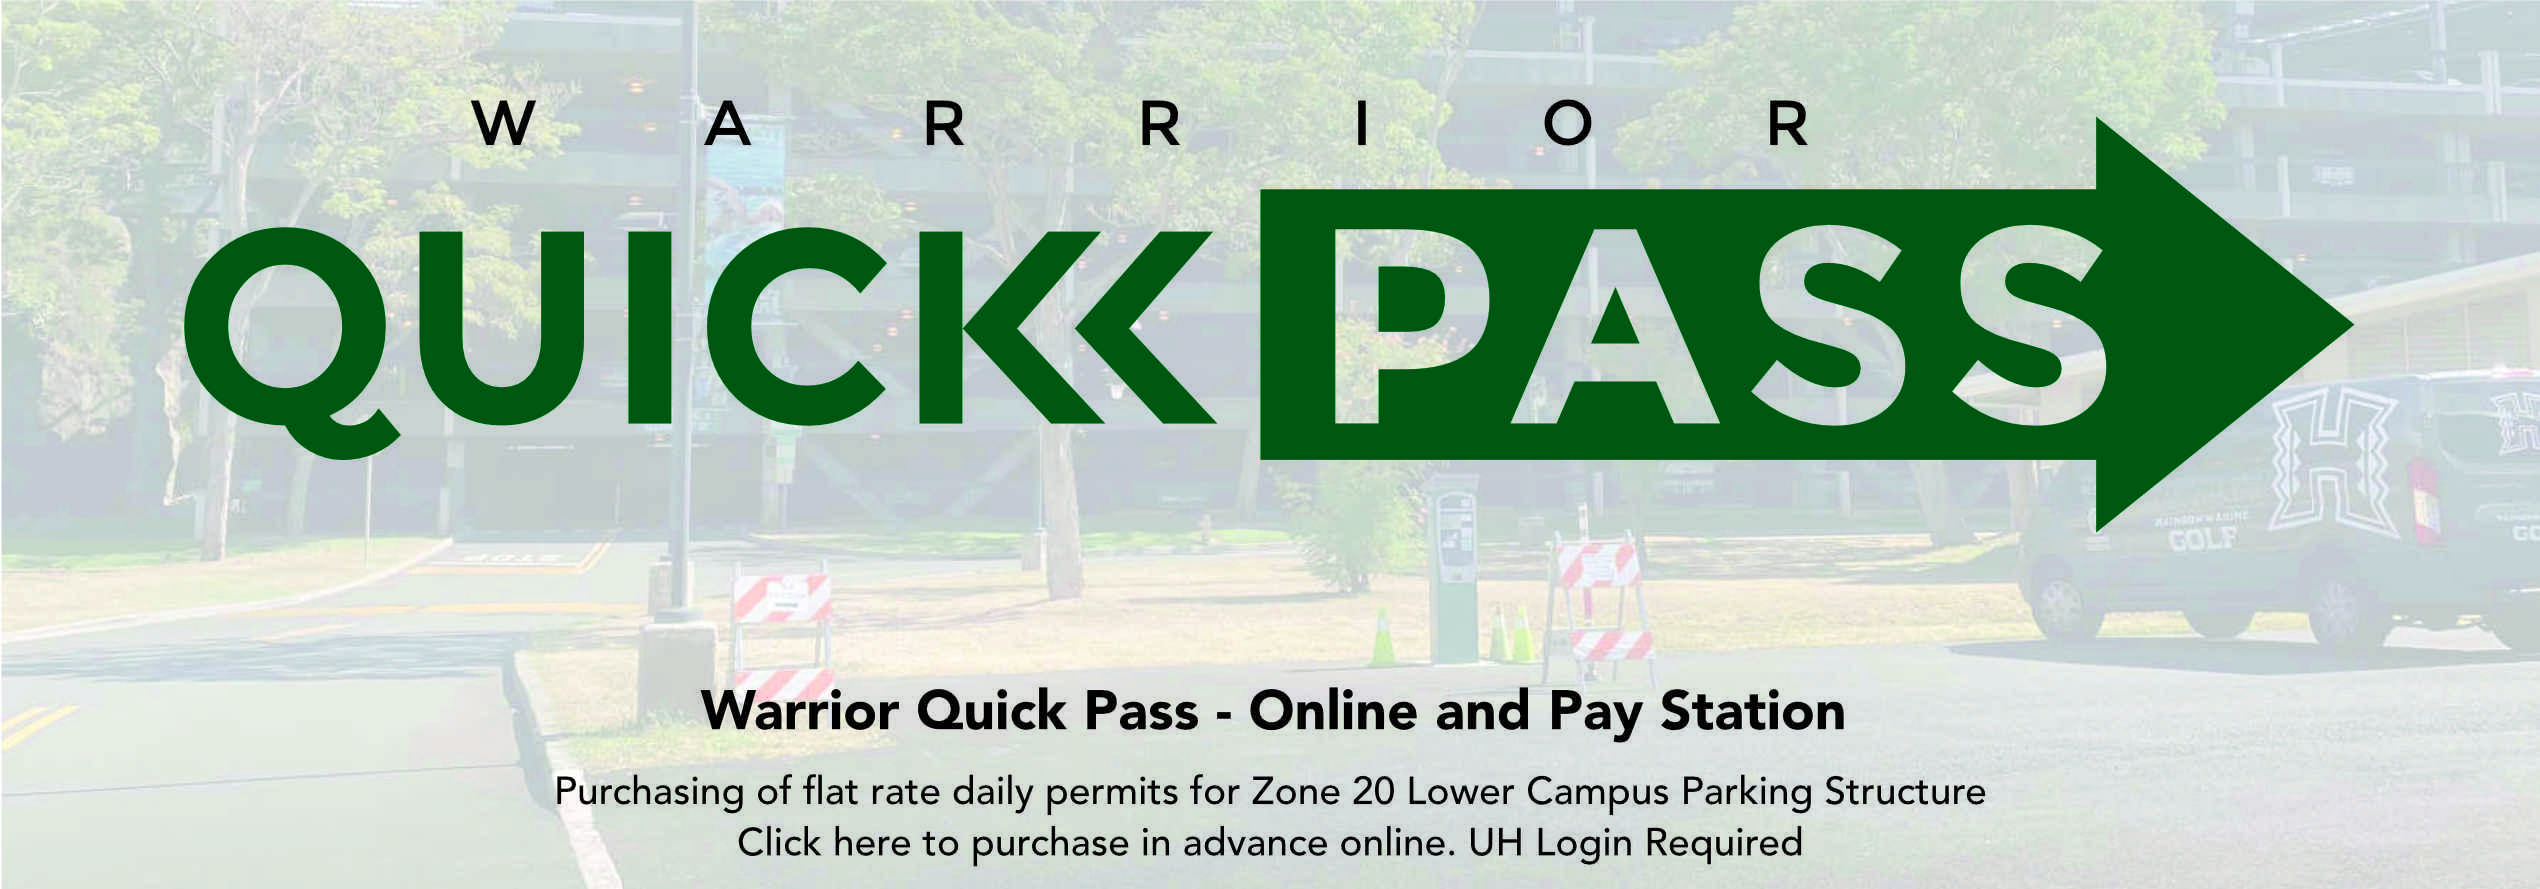 Warrior Quick Pass - Online and Pay Station